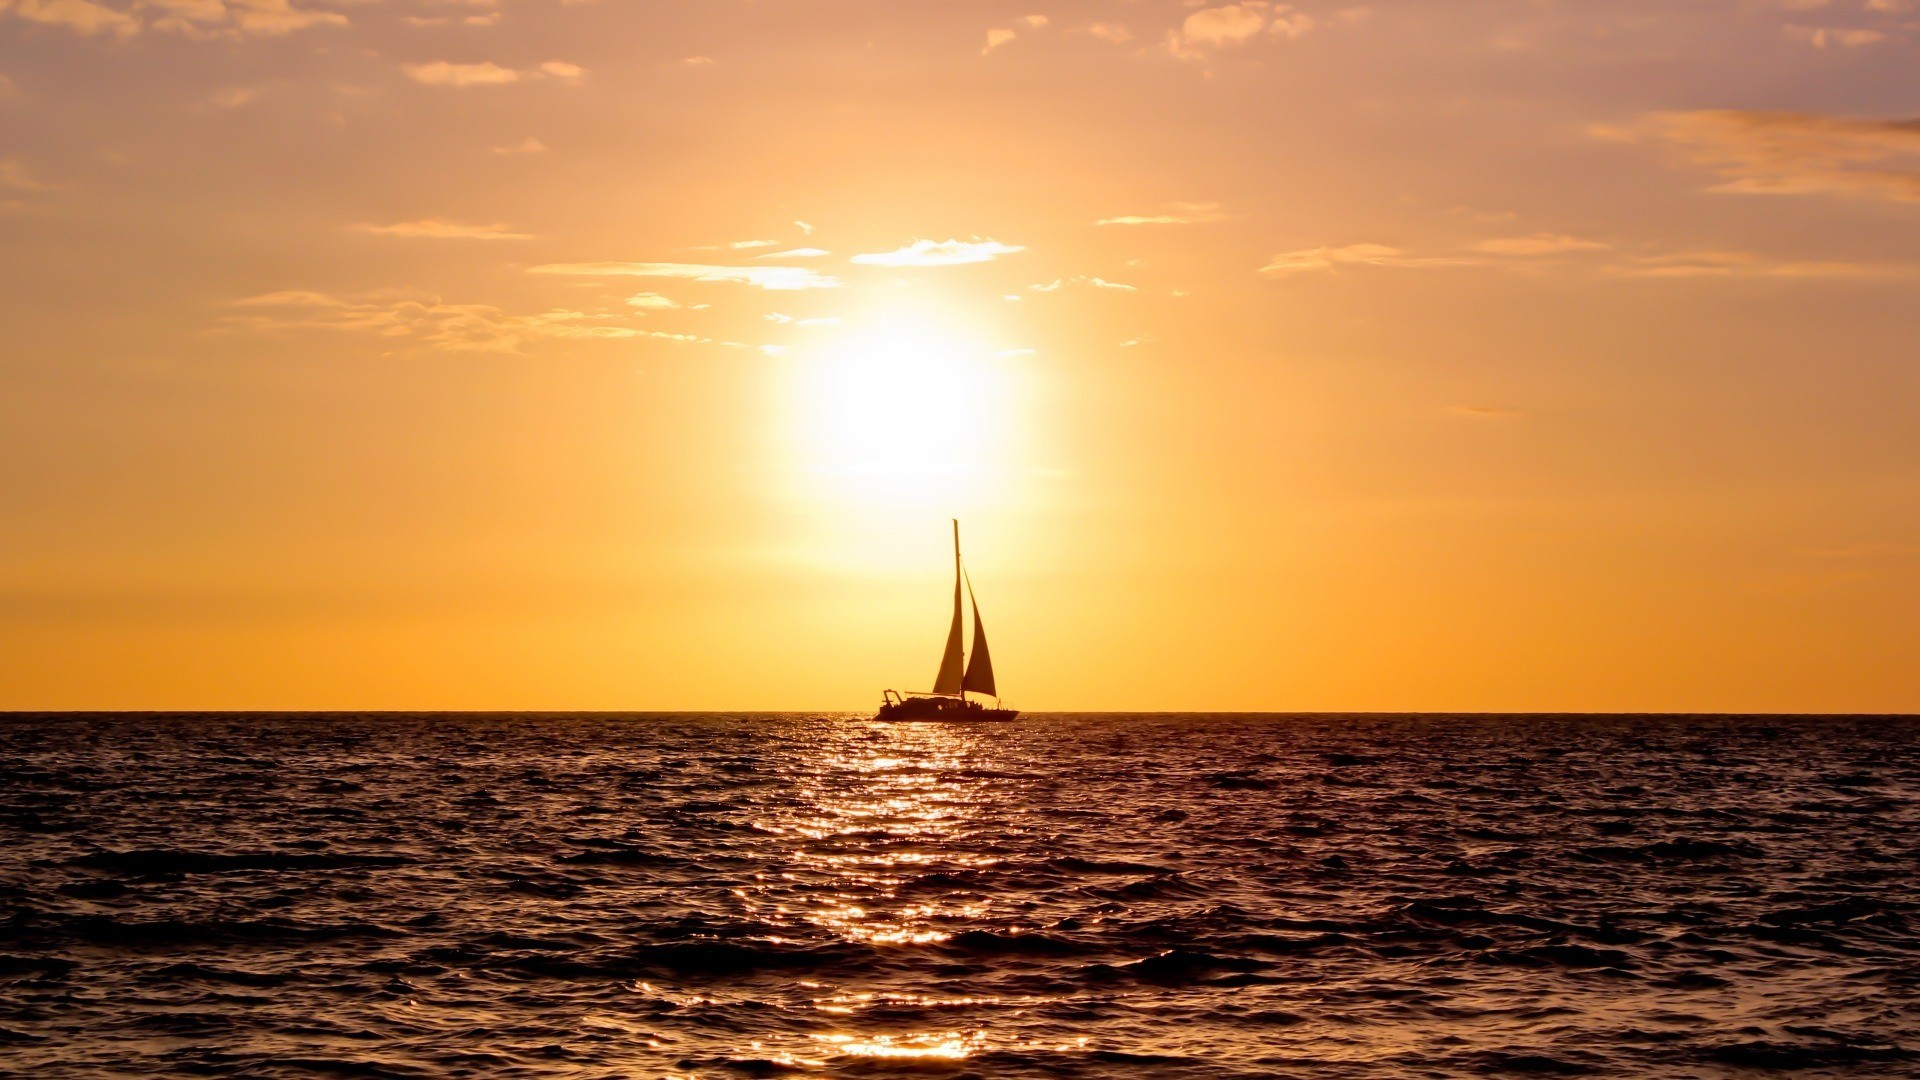 1920x1080 Approaches Golden Summer Sea Sailboat Sailing Sunset Ocean Creatures  Wallpaper